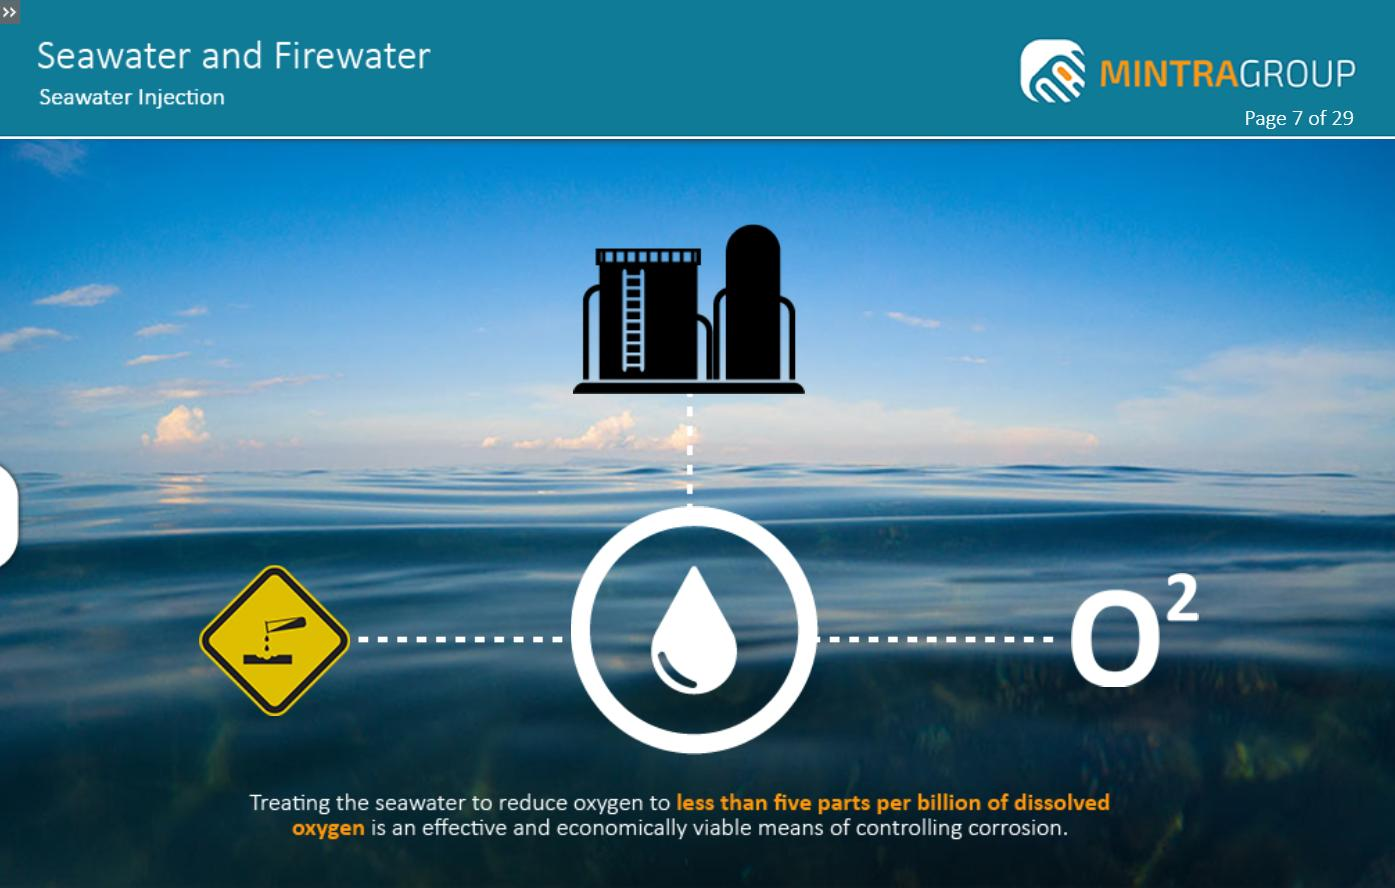 Seawater and Firewater Training